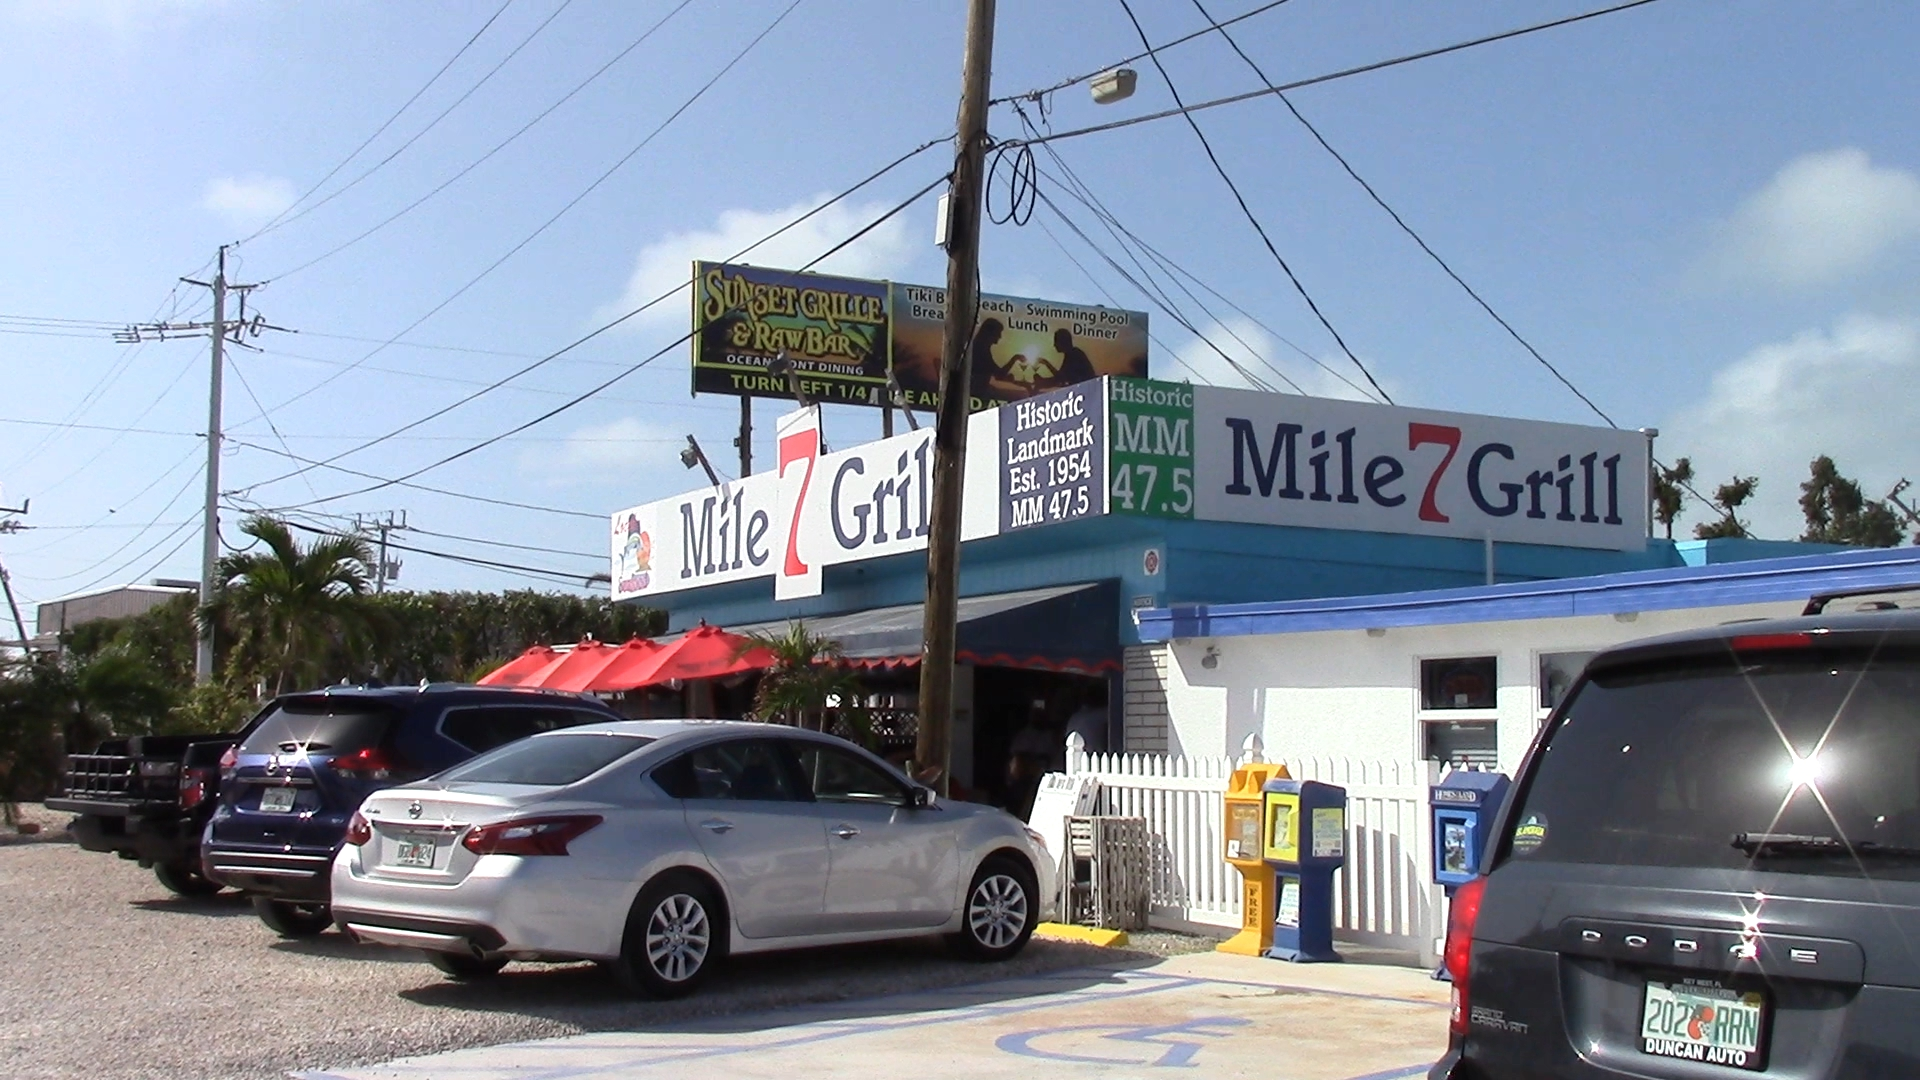 The famous Seven Mile Grill, with an amazing Mahi-Mahi sandwich.